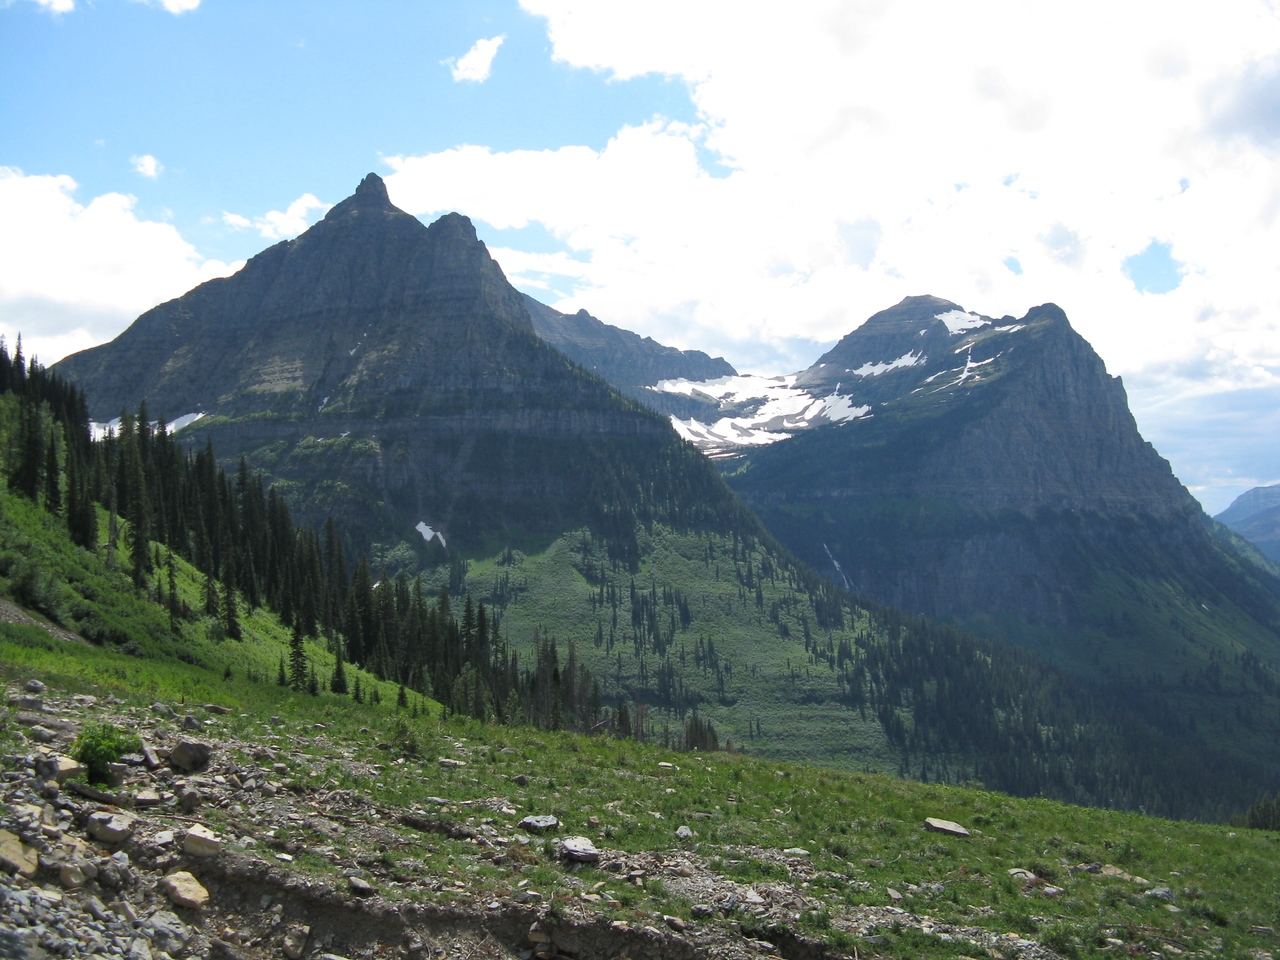 Closer to the pass at about mile 28, Hidden Valley and Hidden Lake lies in between Reynolds Mountain on the left and Bearhat Mountain on the right.  Logan pass is out of the image on the left side.